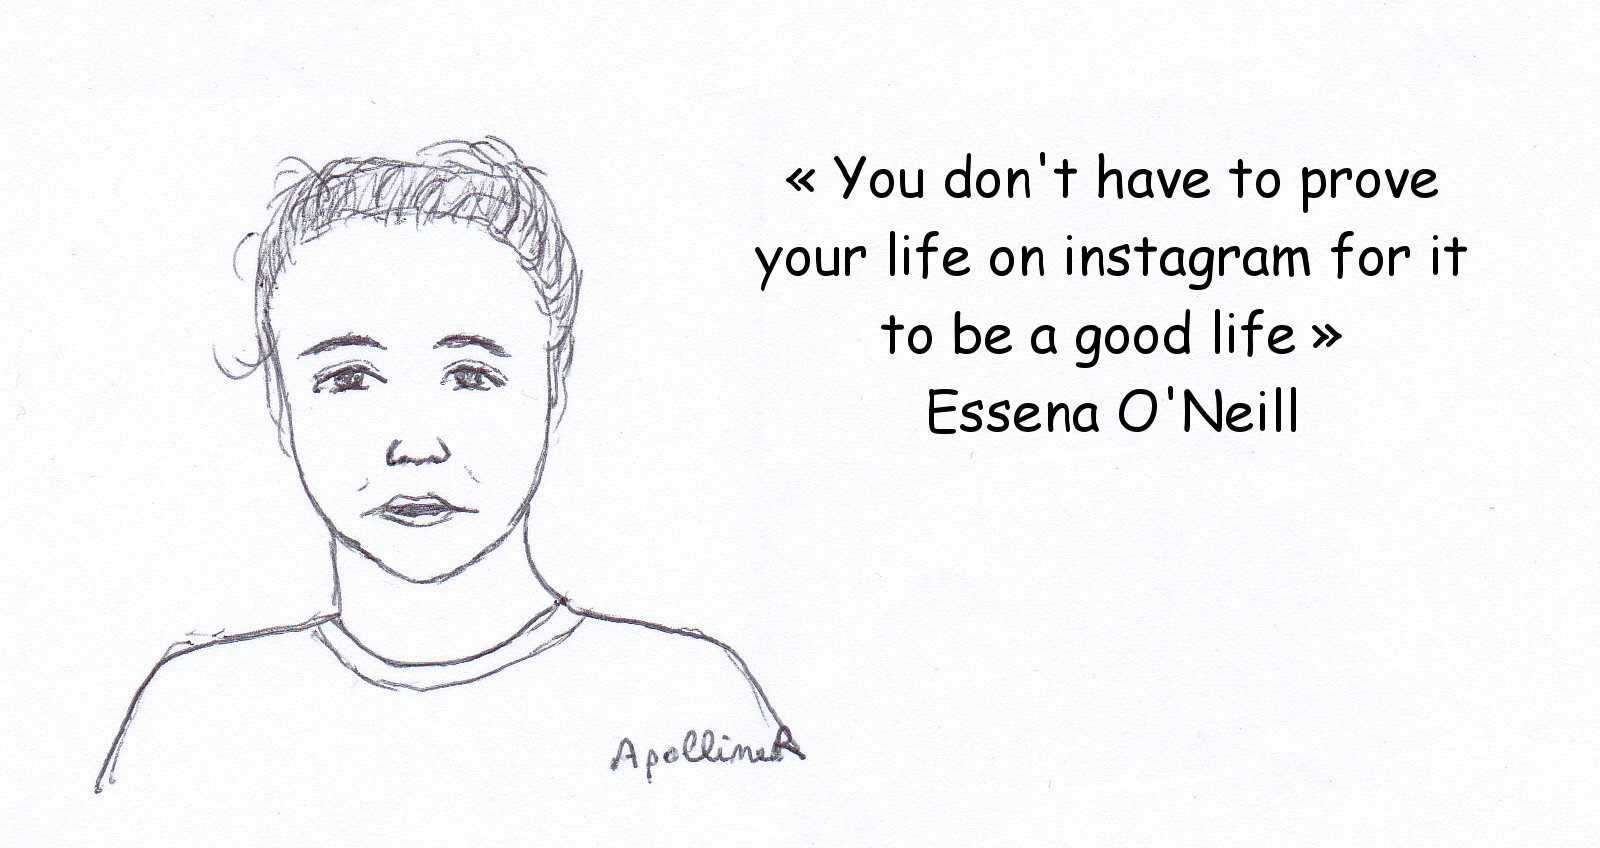 drawing with a quote by Essena O'Neill: You don't have to prove your life on instagram for it to be a good life